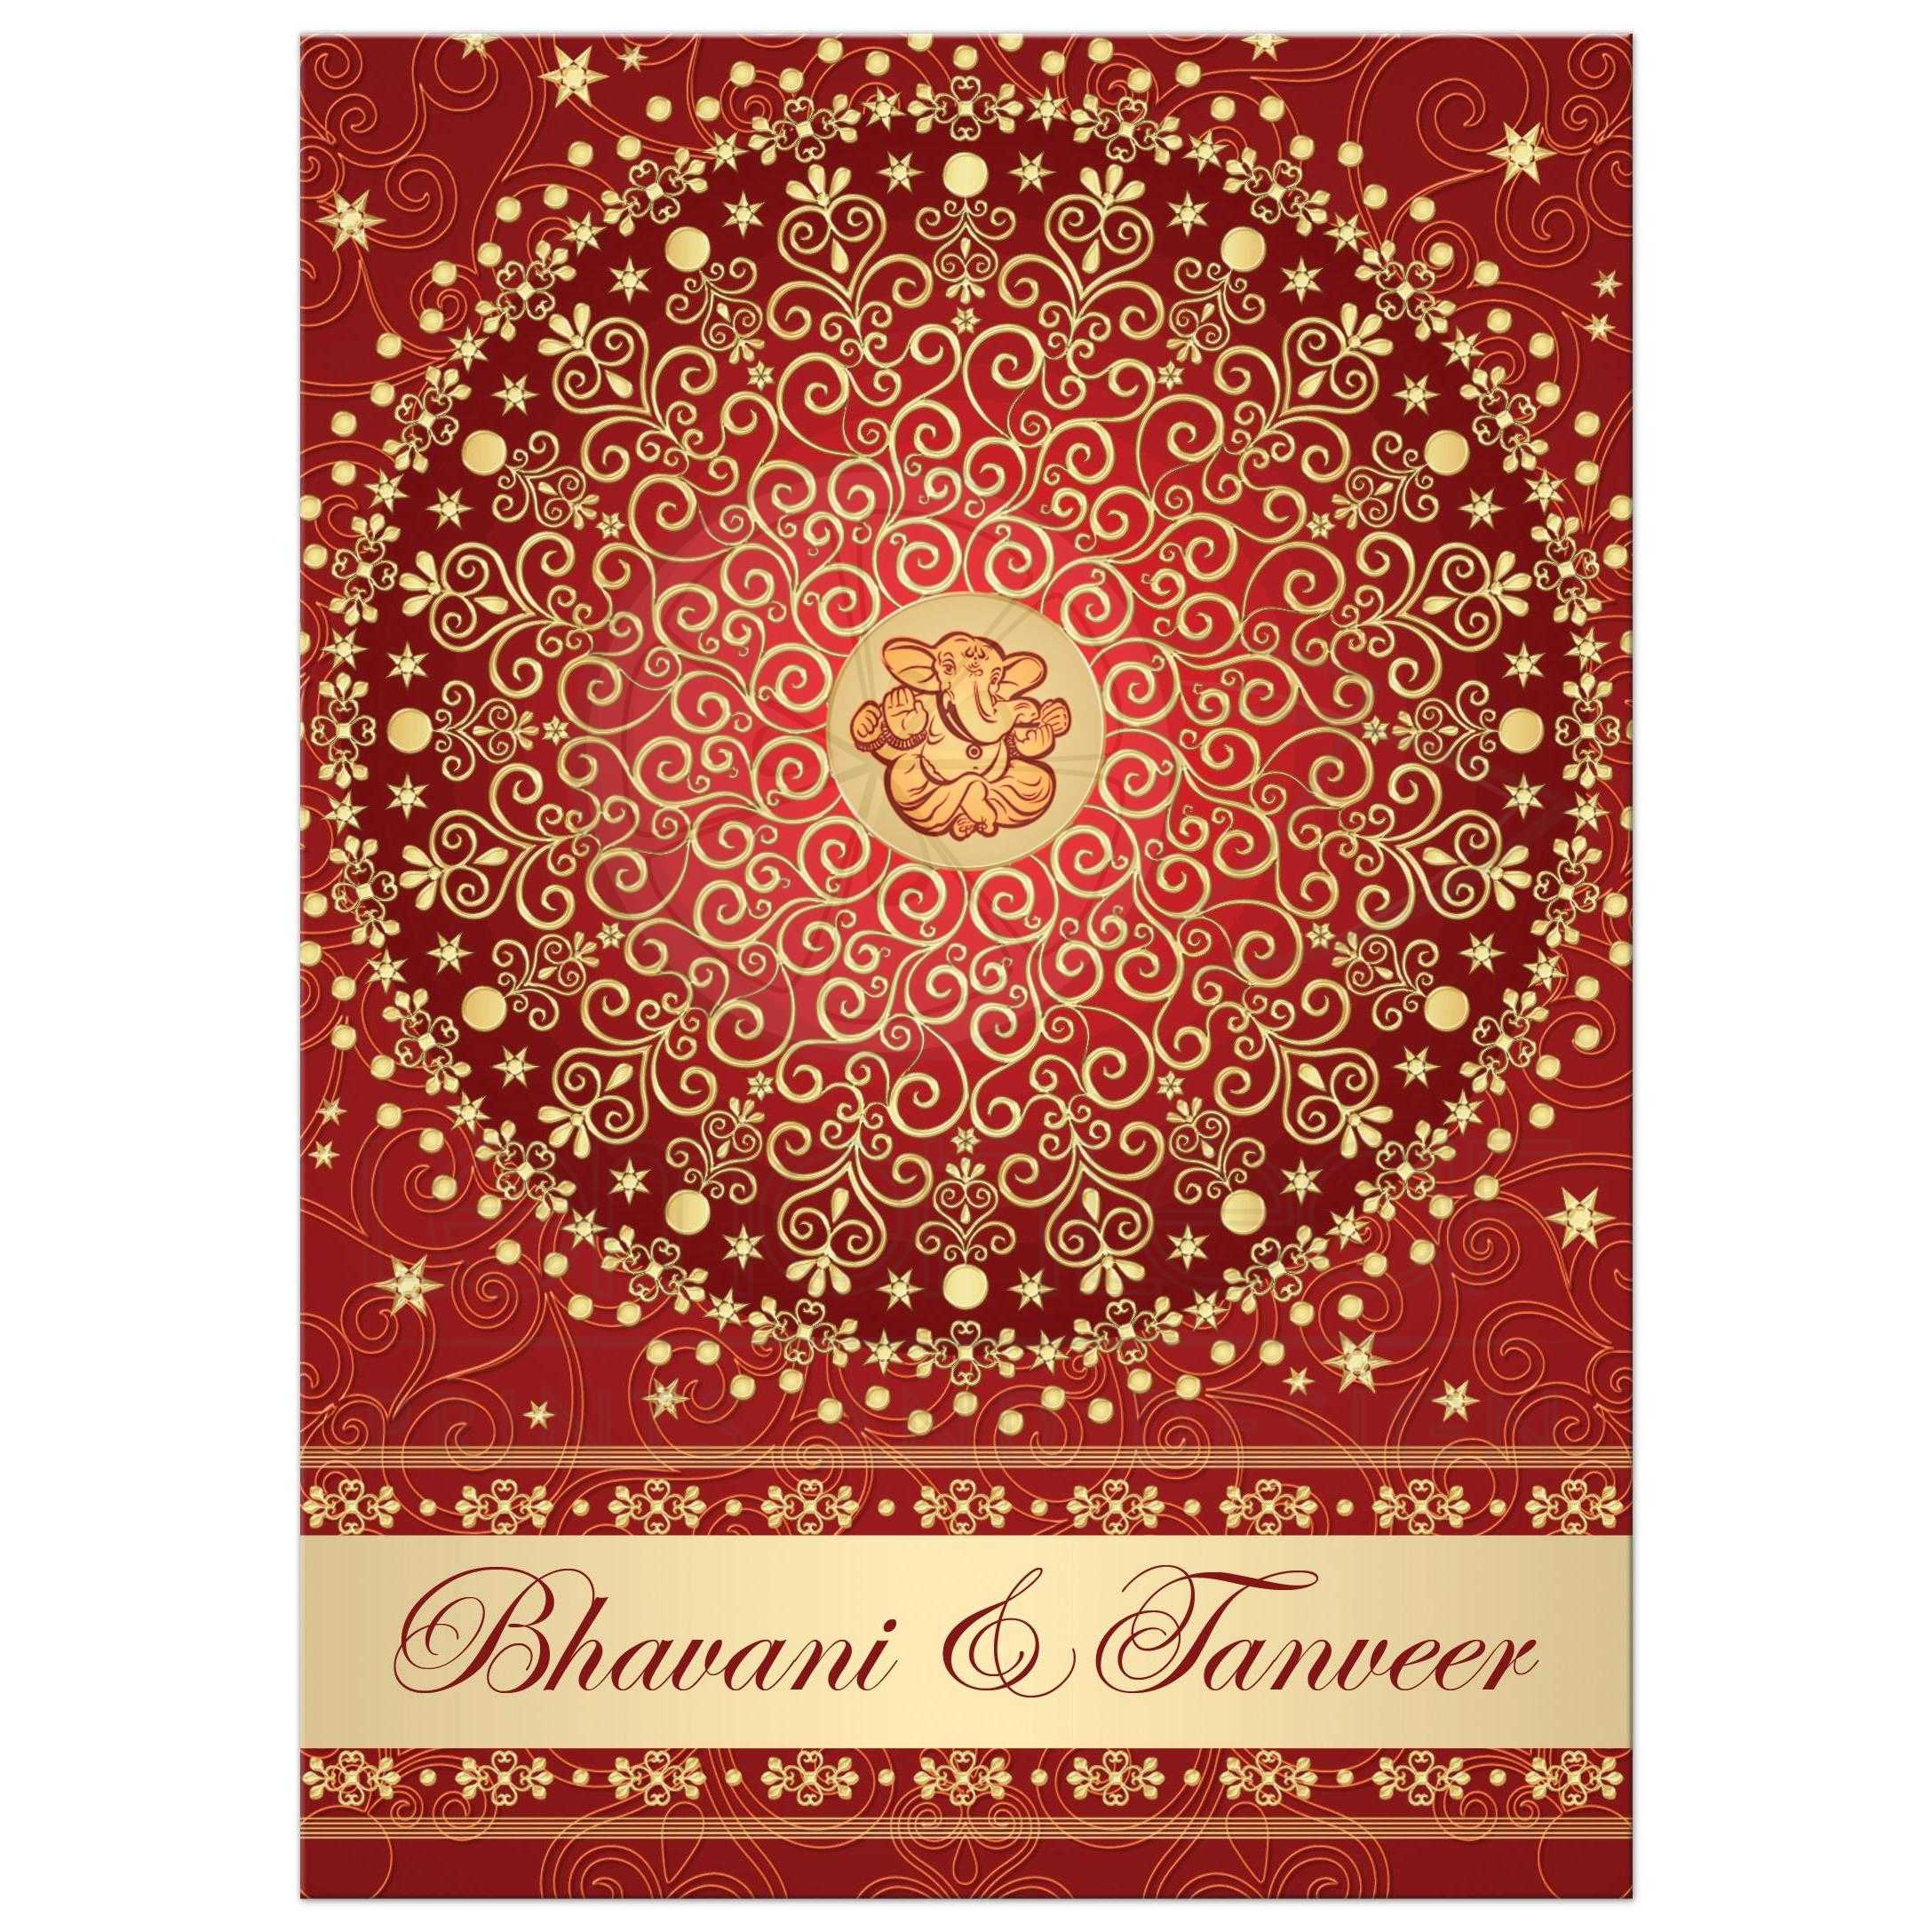 Best Red, Orange And Gold Wedding Ceremony Invitation With Scrolls, Stars,  Dots, ...